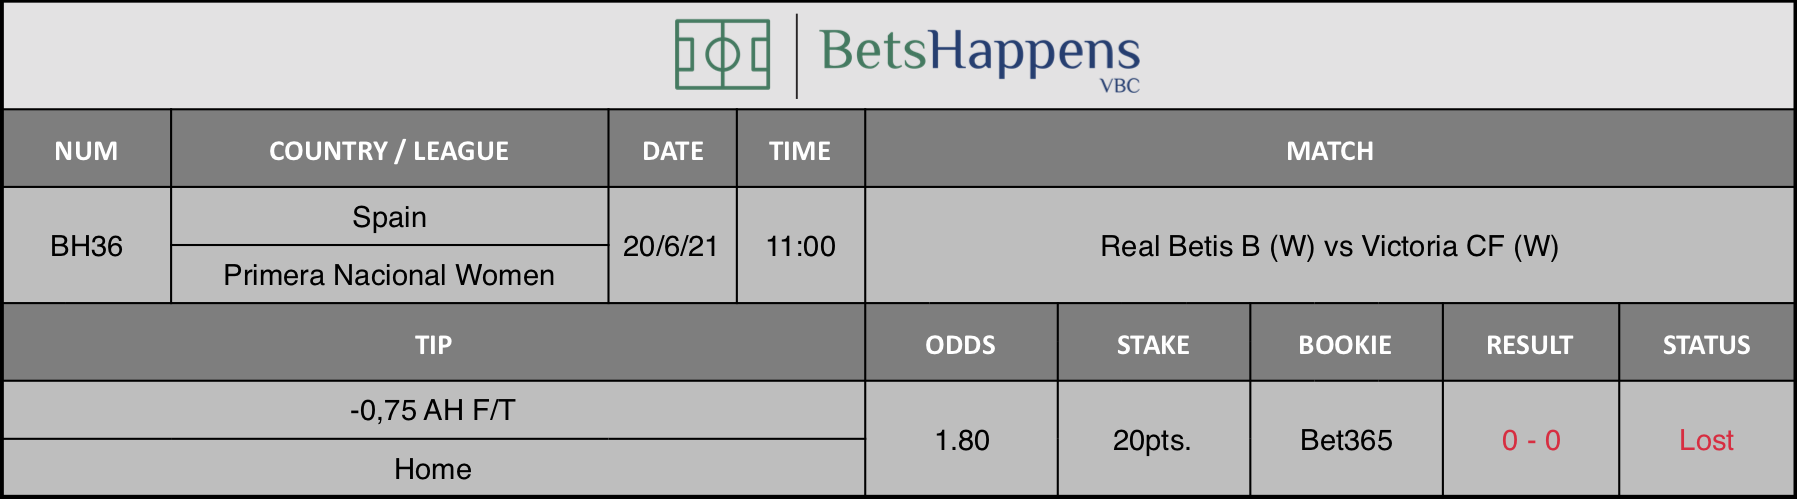 Results of our tip for the Real Betis B (W) vs Victoria CF (W) -0,75 AH F/T Home is recommended.